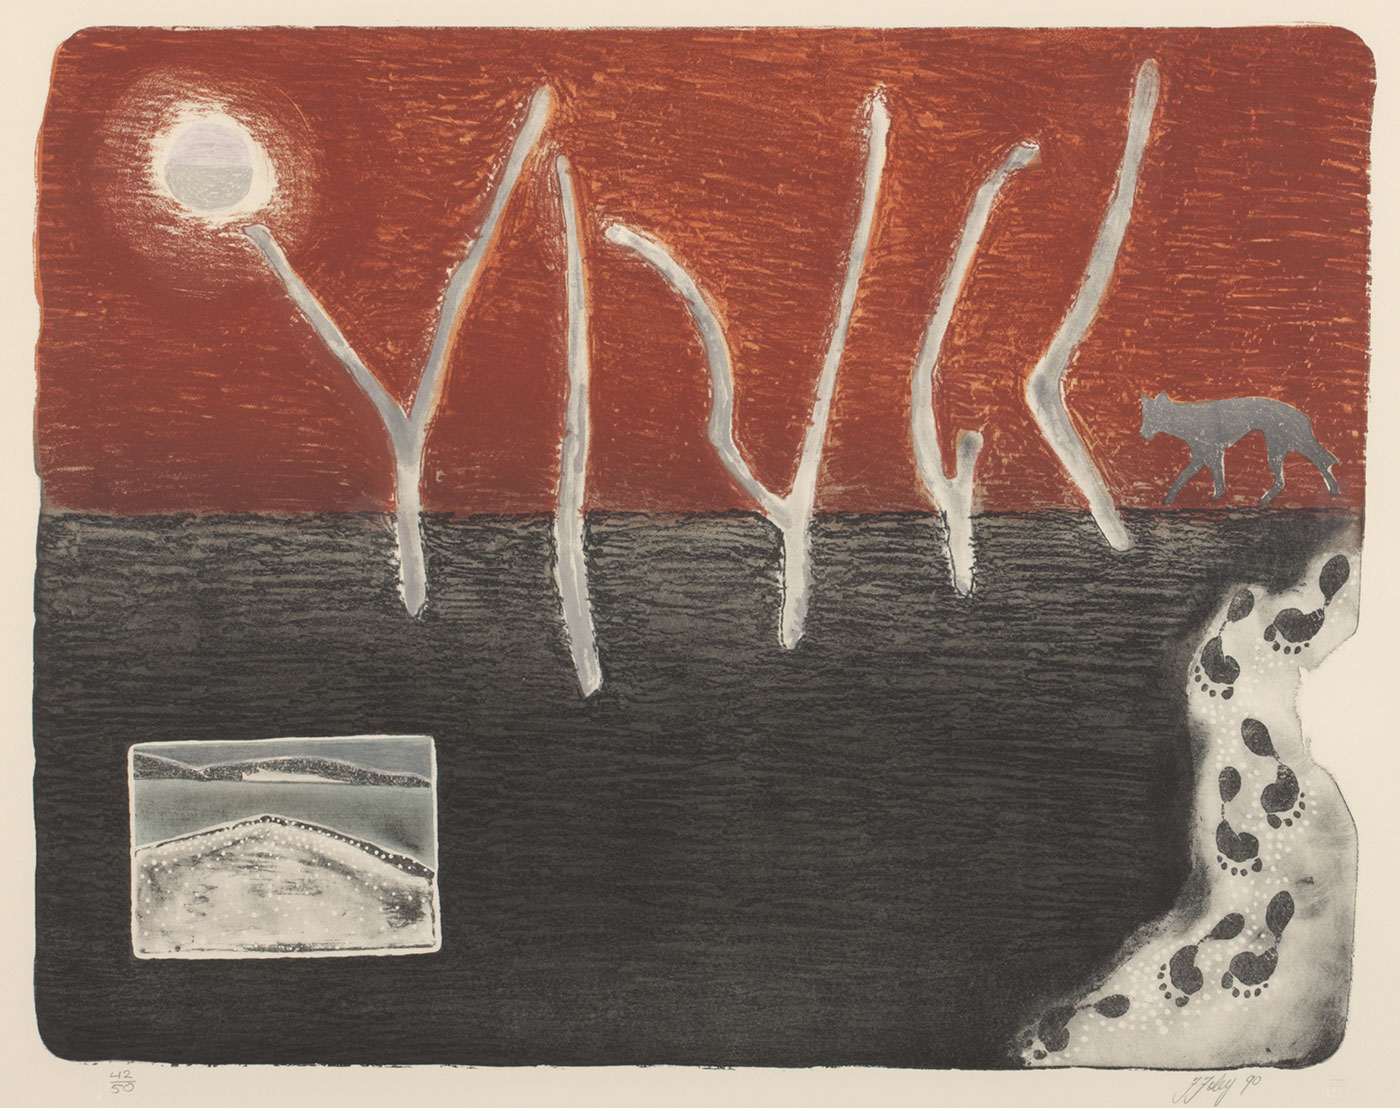 A colour print on paper featuring a brown and black landscape.The landscape is split into to horizontal sections, brown at the top and black at the bottom. Cutting across both sections are five thin grey shapes resembling dead trees. In the top left corner is a grey circle resembling a sun. On the right side is a dog-like animal, probably a dingo, and a section depicting human footprints. There is a rectangular feature in the bottom left showing a black, white and grey landscape. On the bottom left of the print is the series number '42/50' and the signature 'F Foley 90' is on the bottom right.